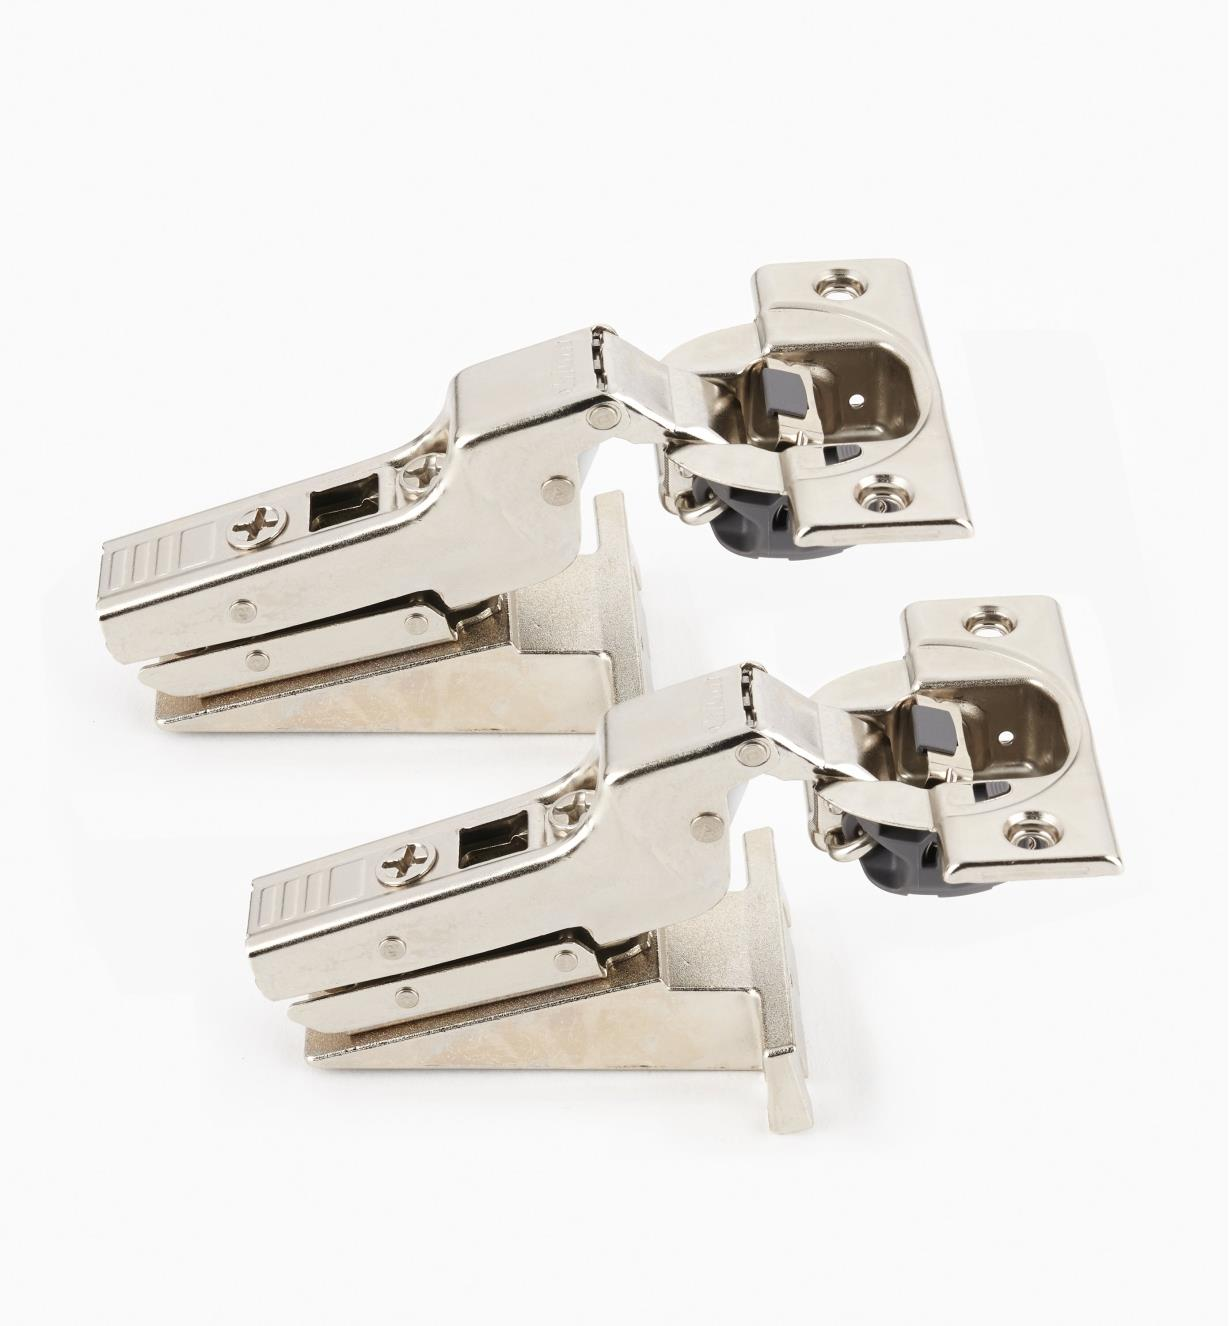 00B1813 - Blum Face-Frame 110° Soft-Close Clip-Top Inset Hinges, pr